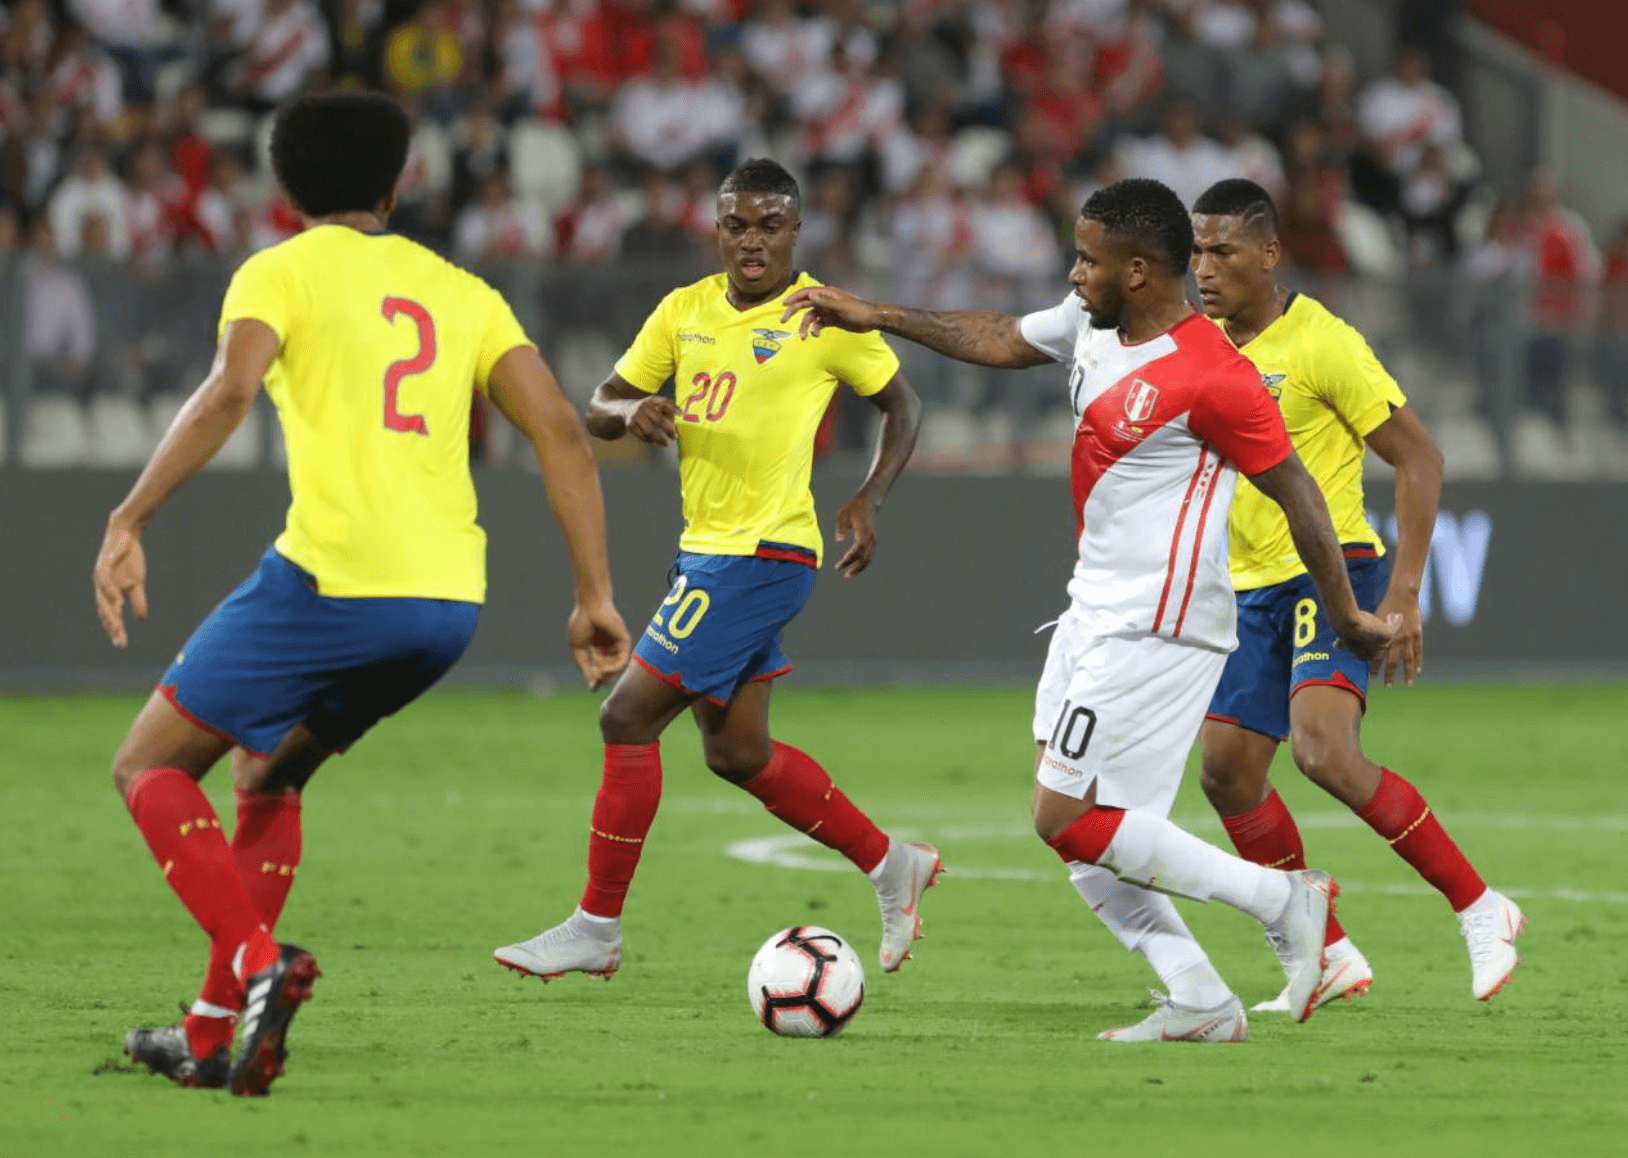 Peru drops home friendly to Ecuador 2-0